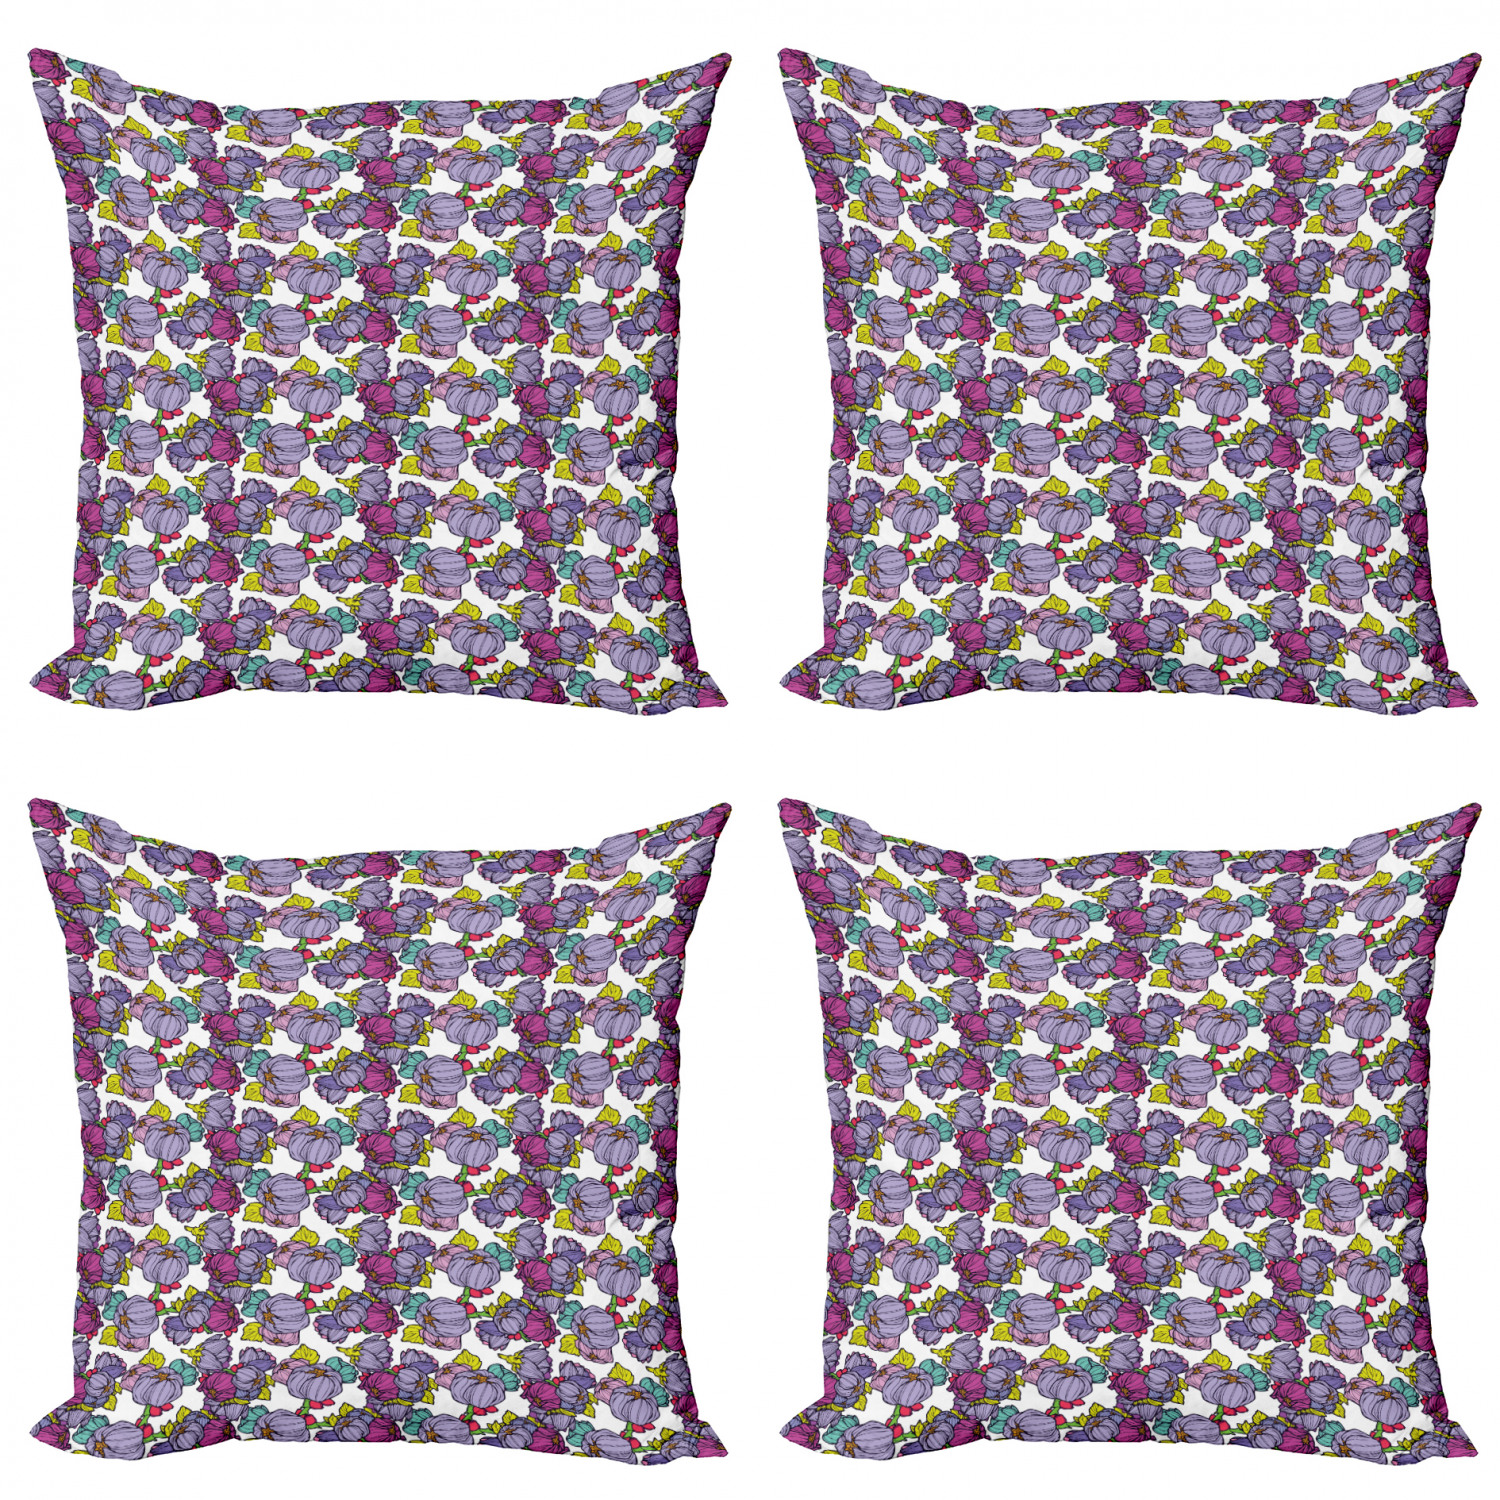 Ambesonne-Floral-Drawings-Cushion-Cover-Set-of-4-for-Couch-and-Bed-in-4-Sizes thumbnail 61